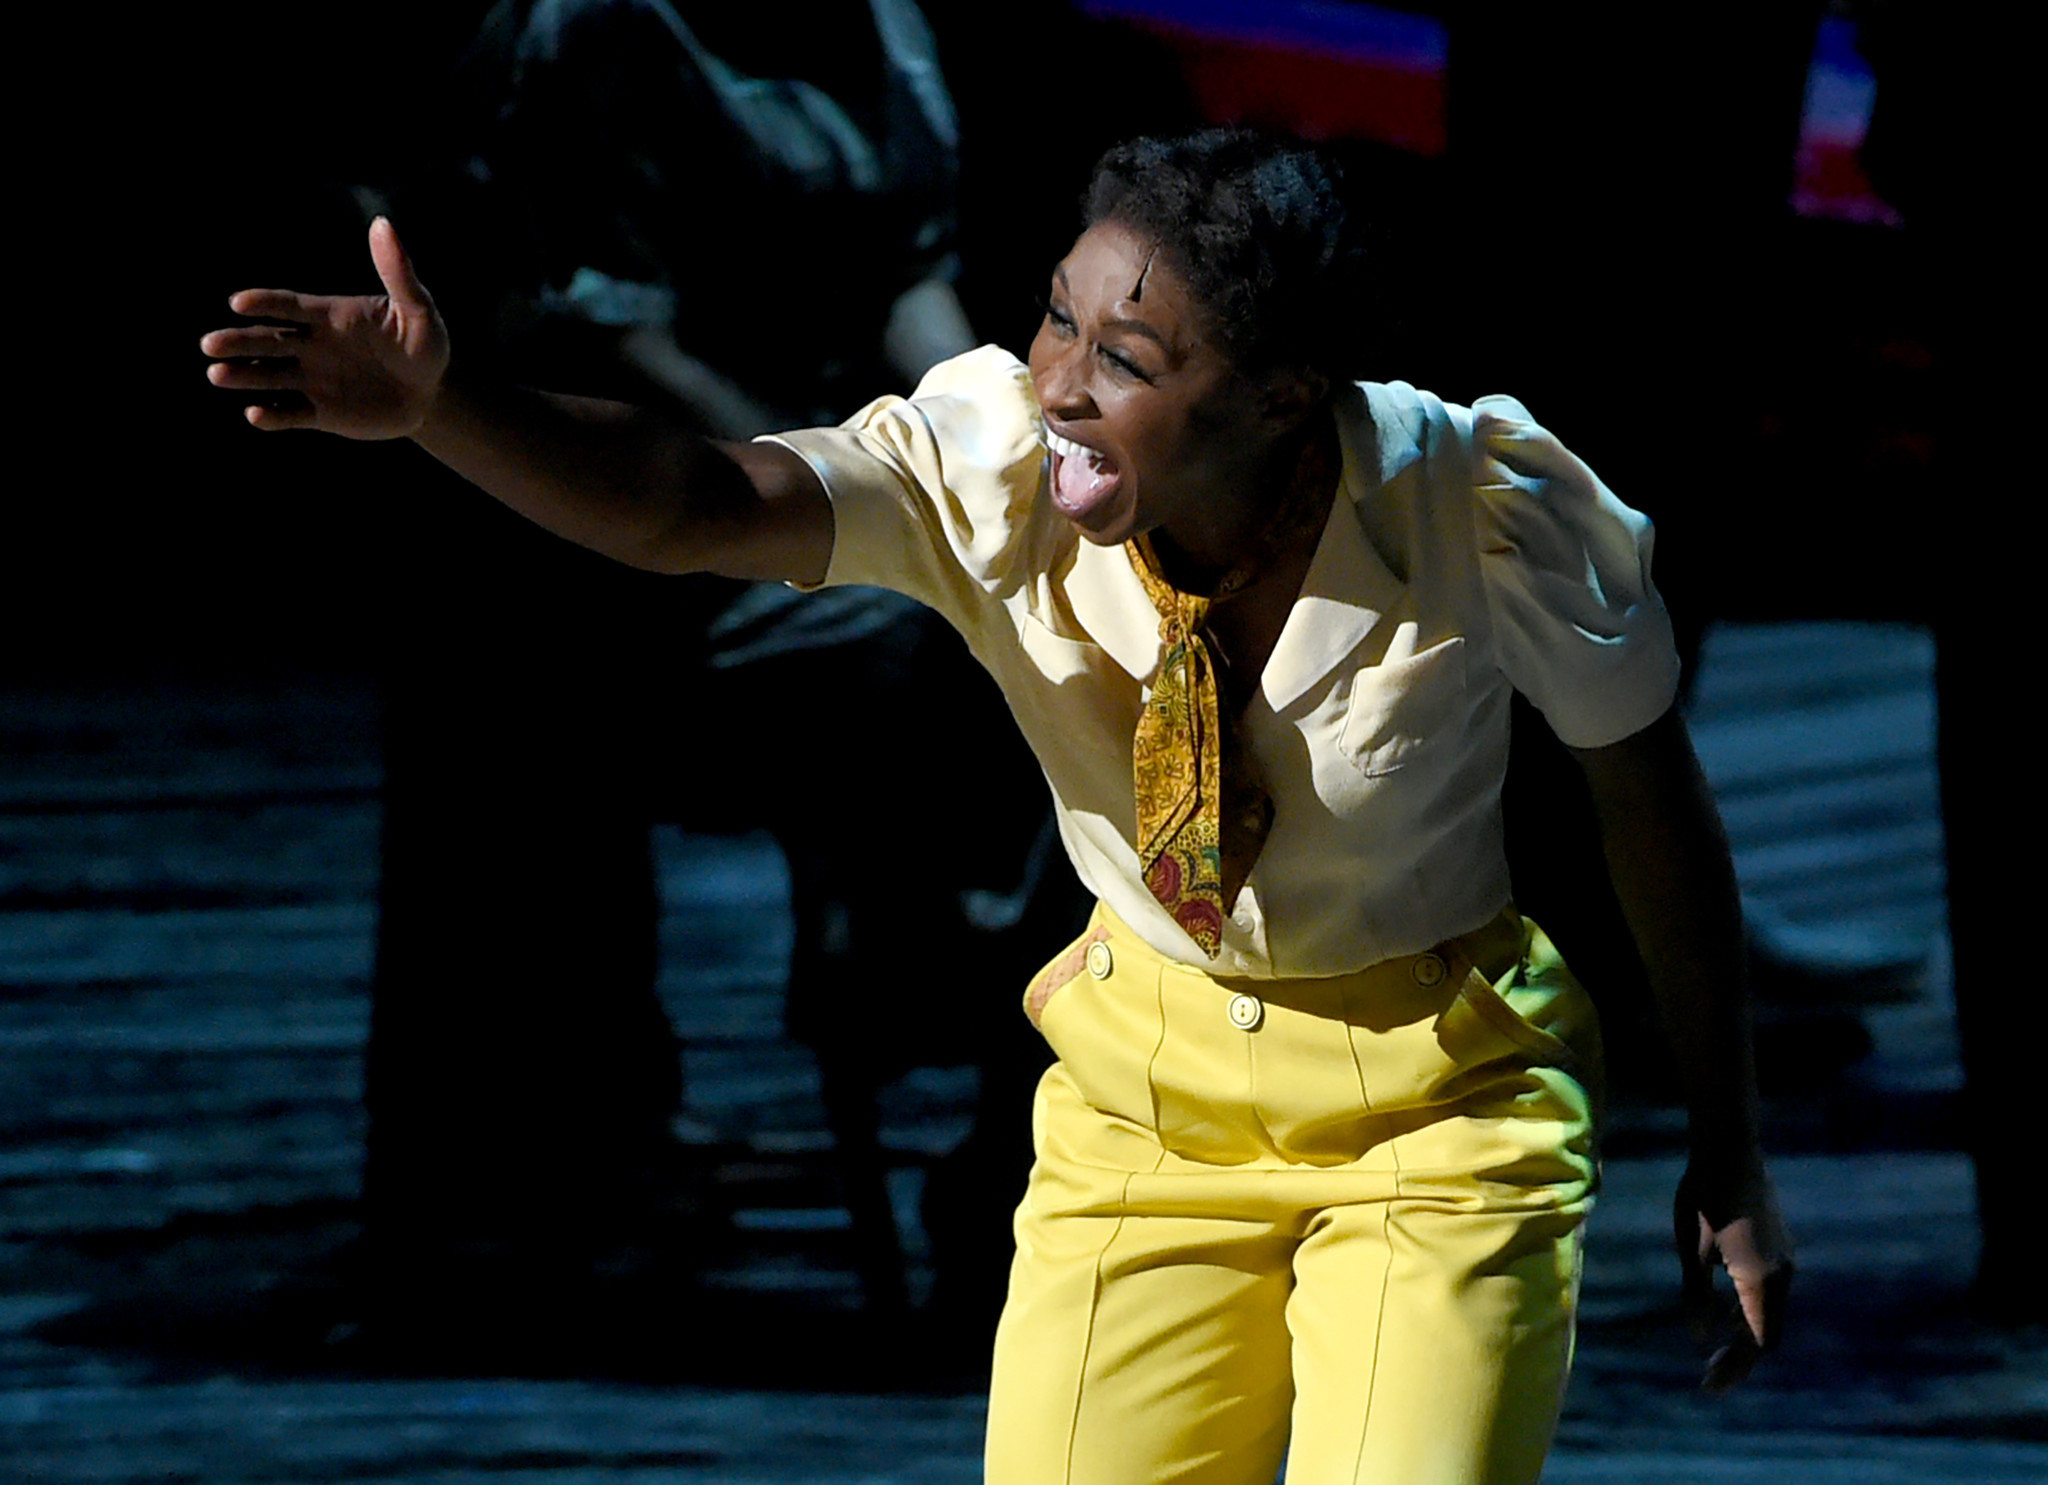 essay on the color purple hamilton wins tony awards on a night  hamilton wins tony awards on a night that balances sympathy cynthia erivo in the color purple